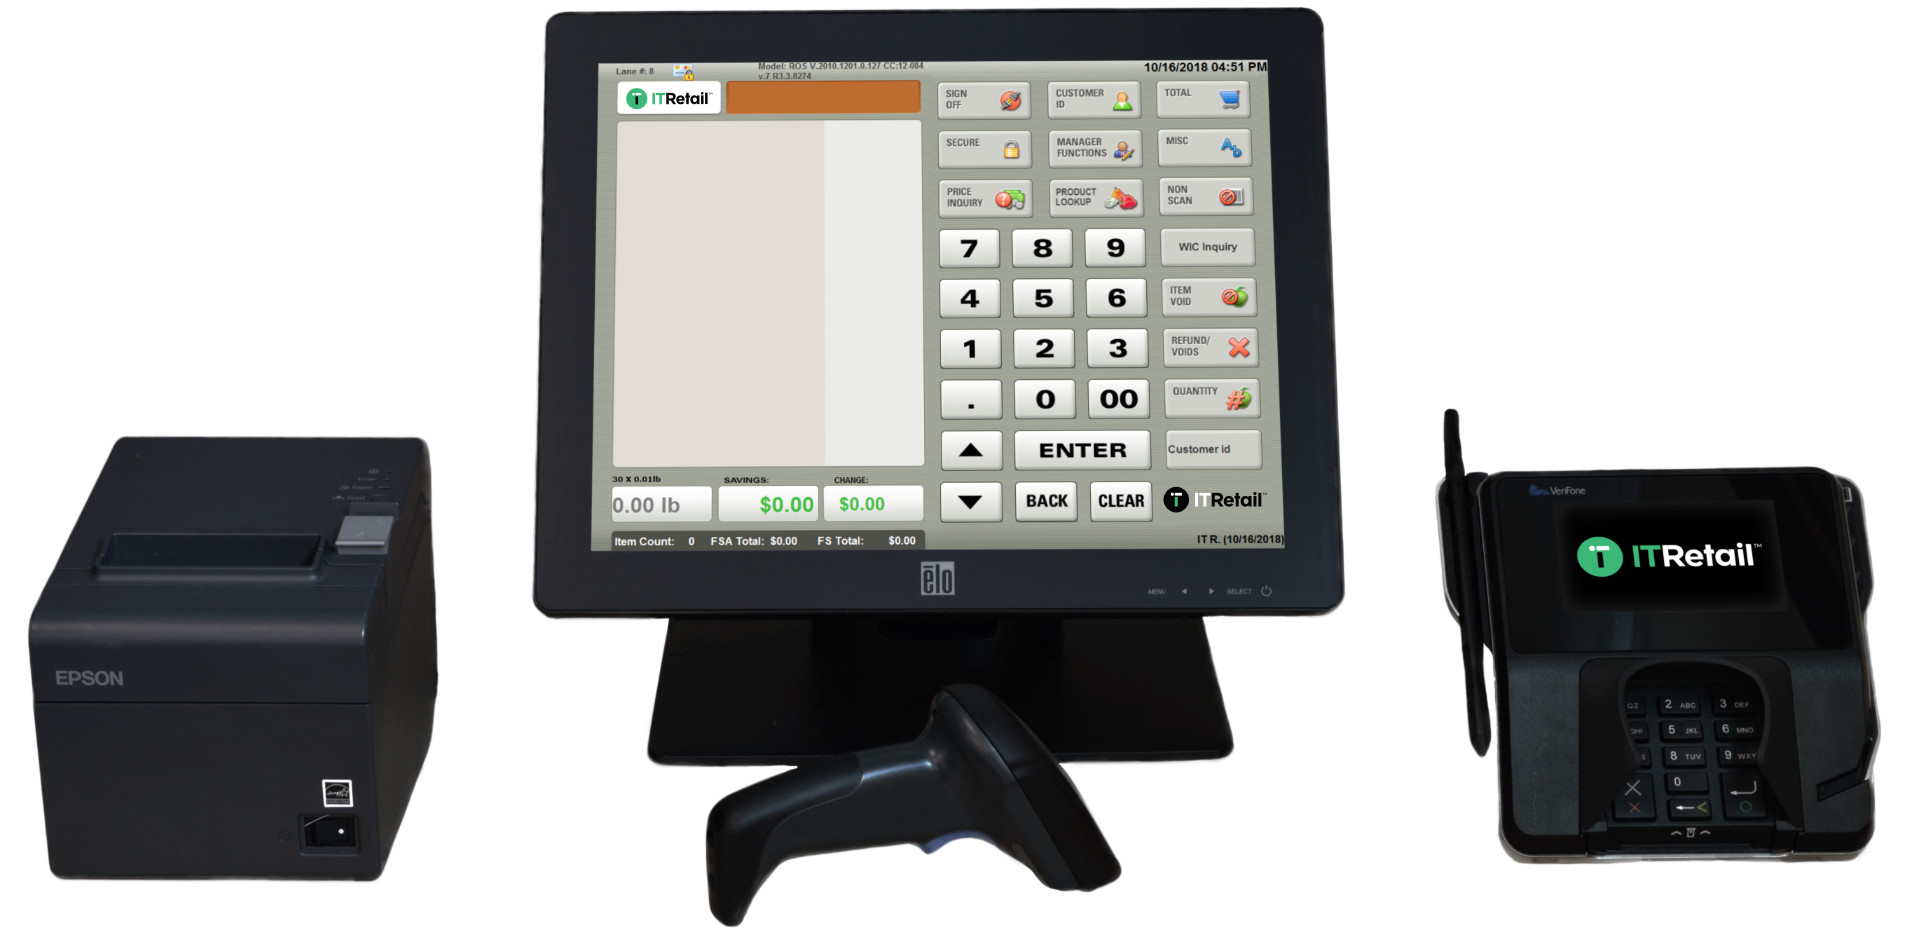 Supermarket Point of Sale System